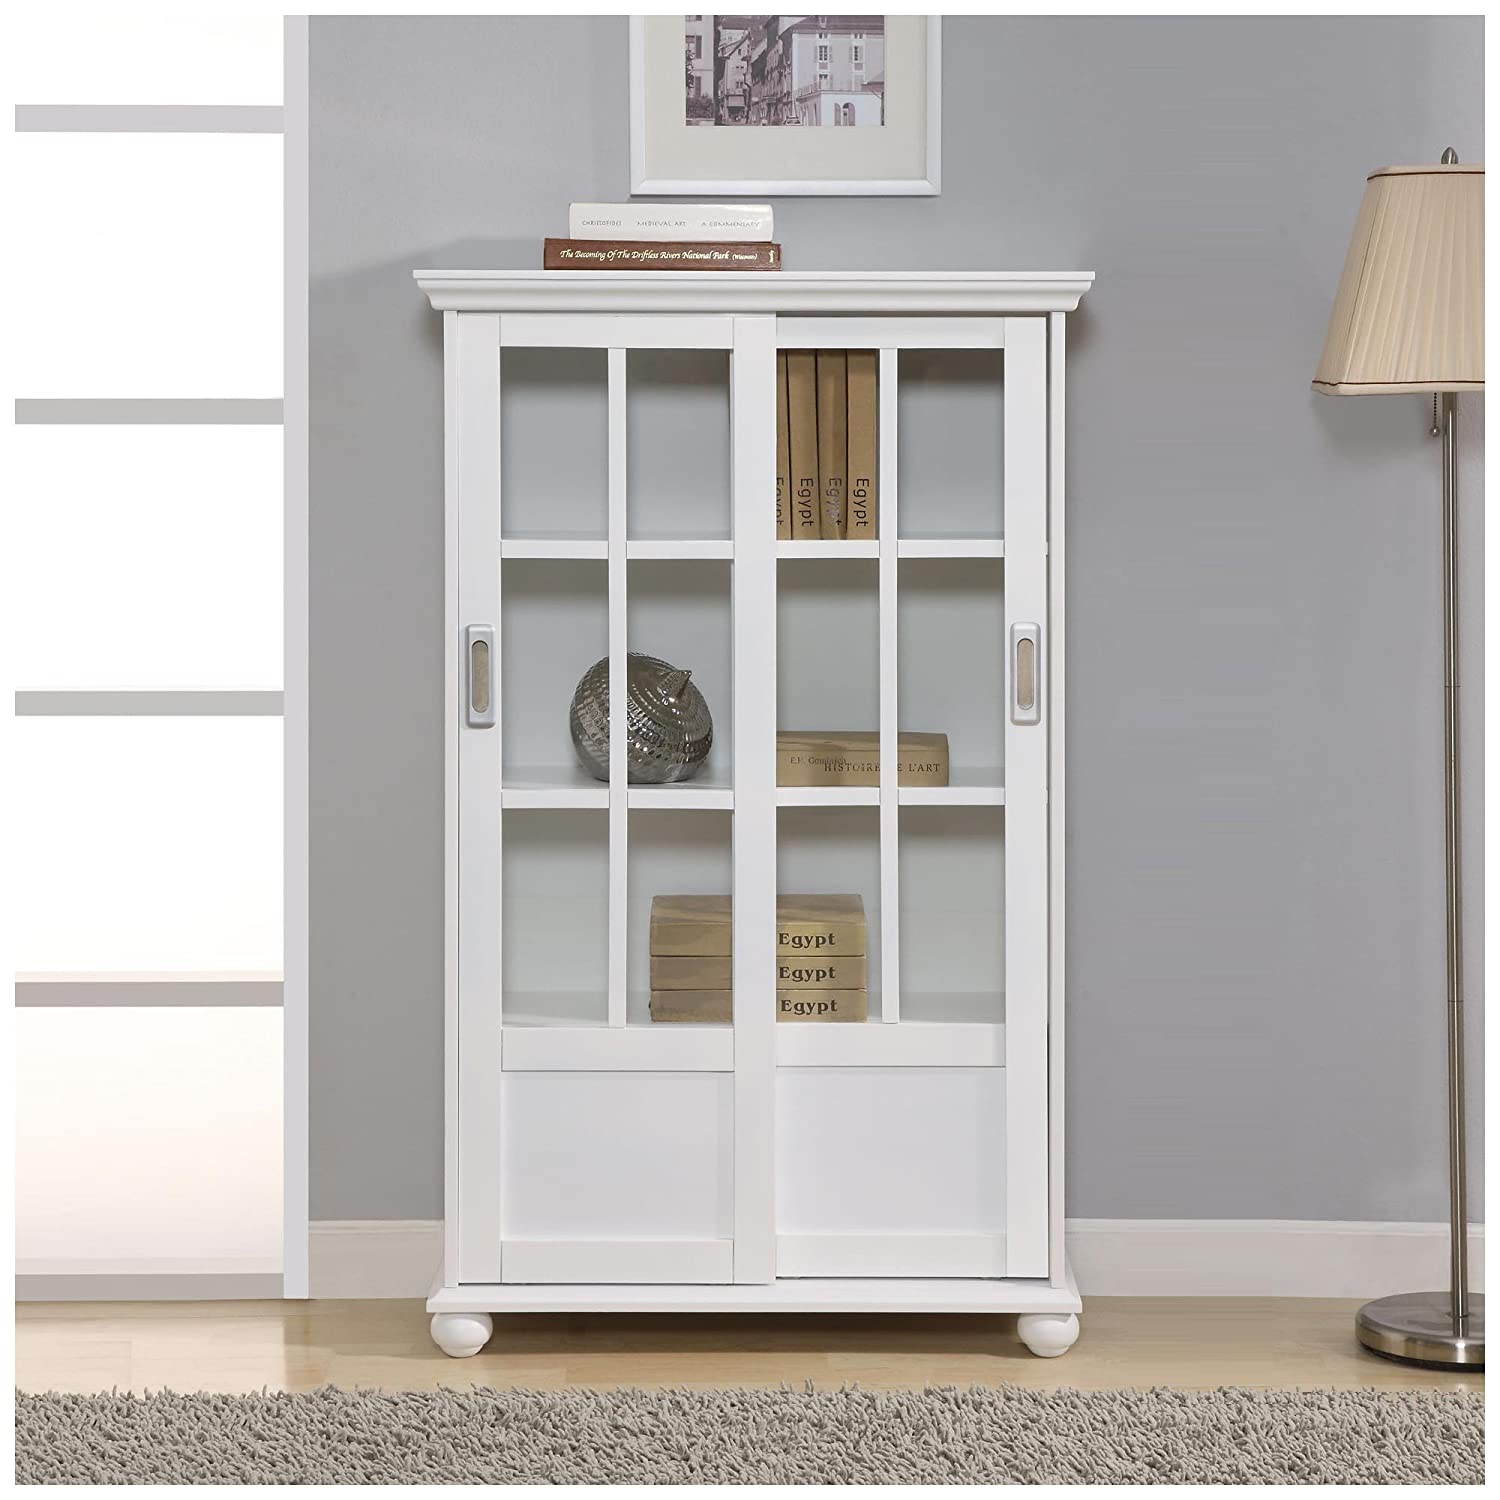 for wall abstact doors ceramic rugs picture area choosing stained wooden sliding light brown frame classic varnished windows floor chiar with a book modern flower tile glass bookcases bookcase rattan patio considerations white marble door vase sofa